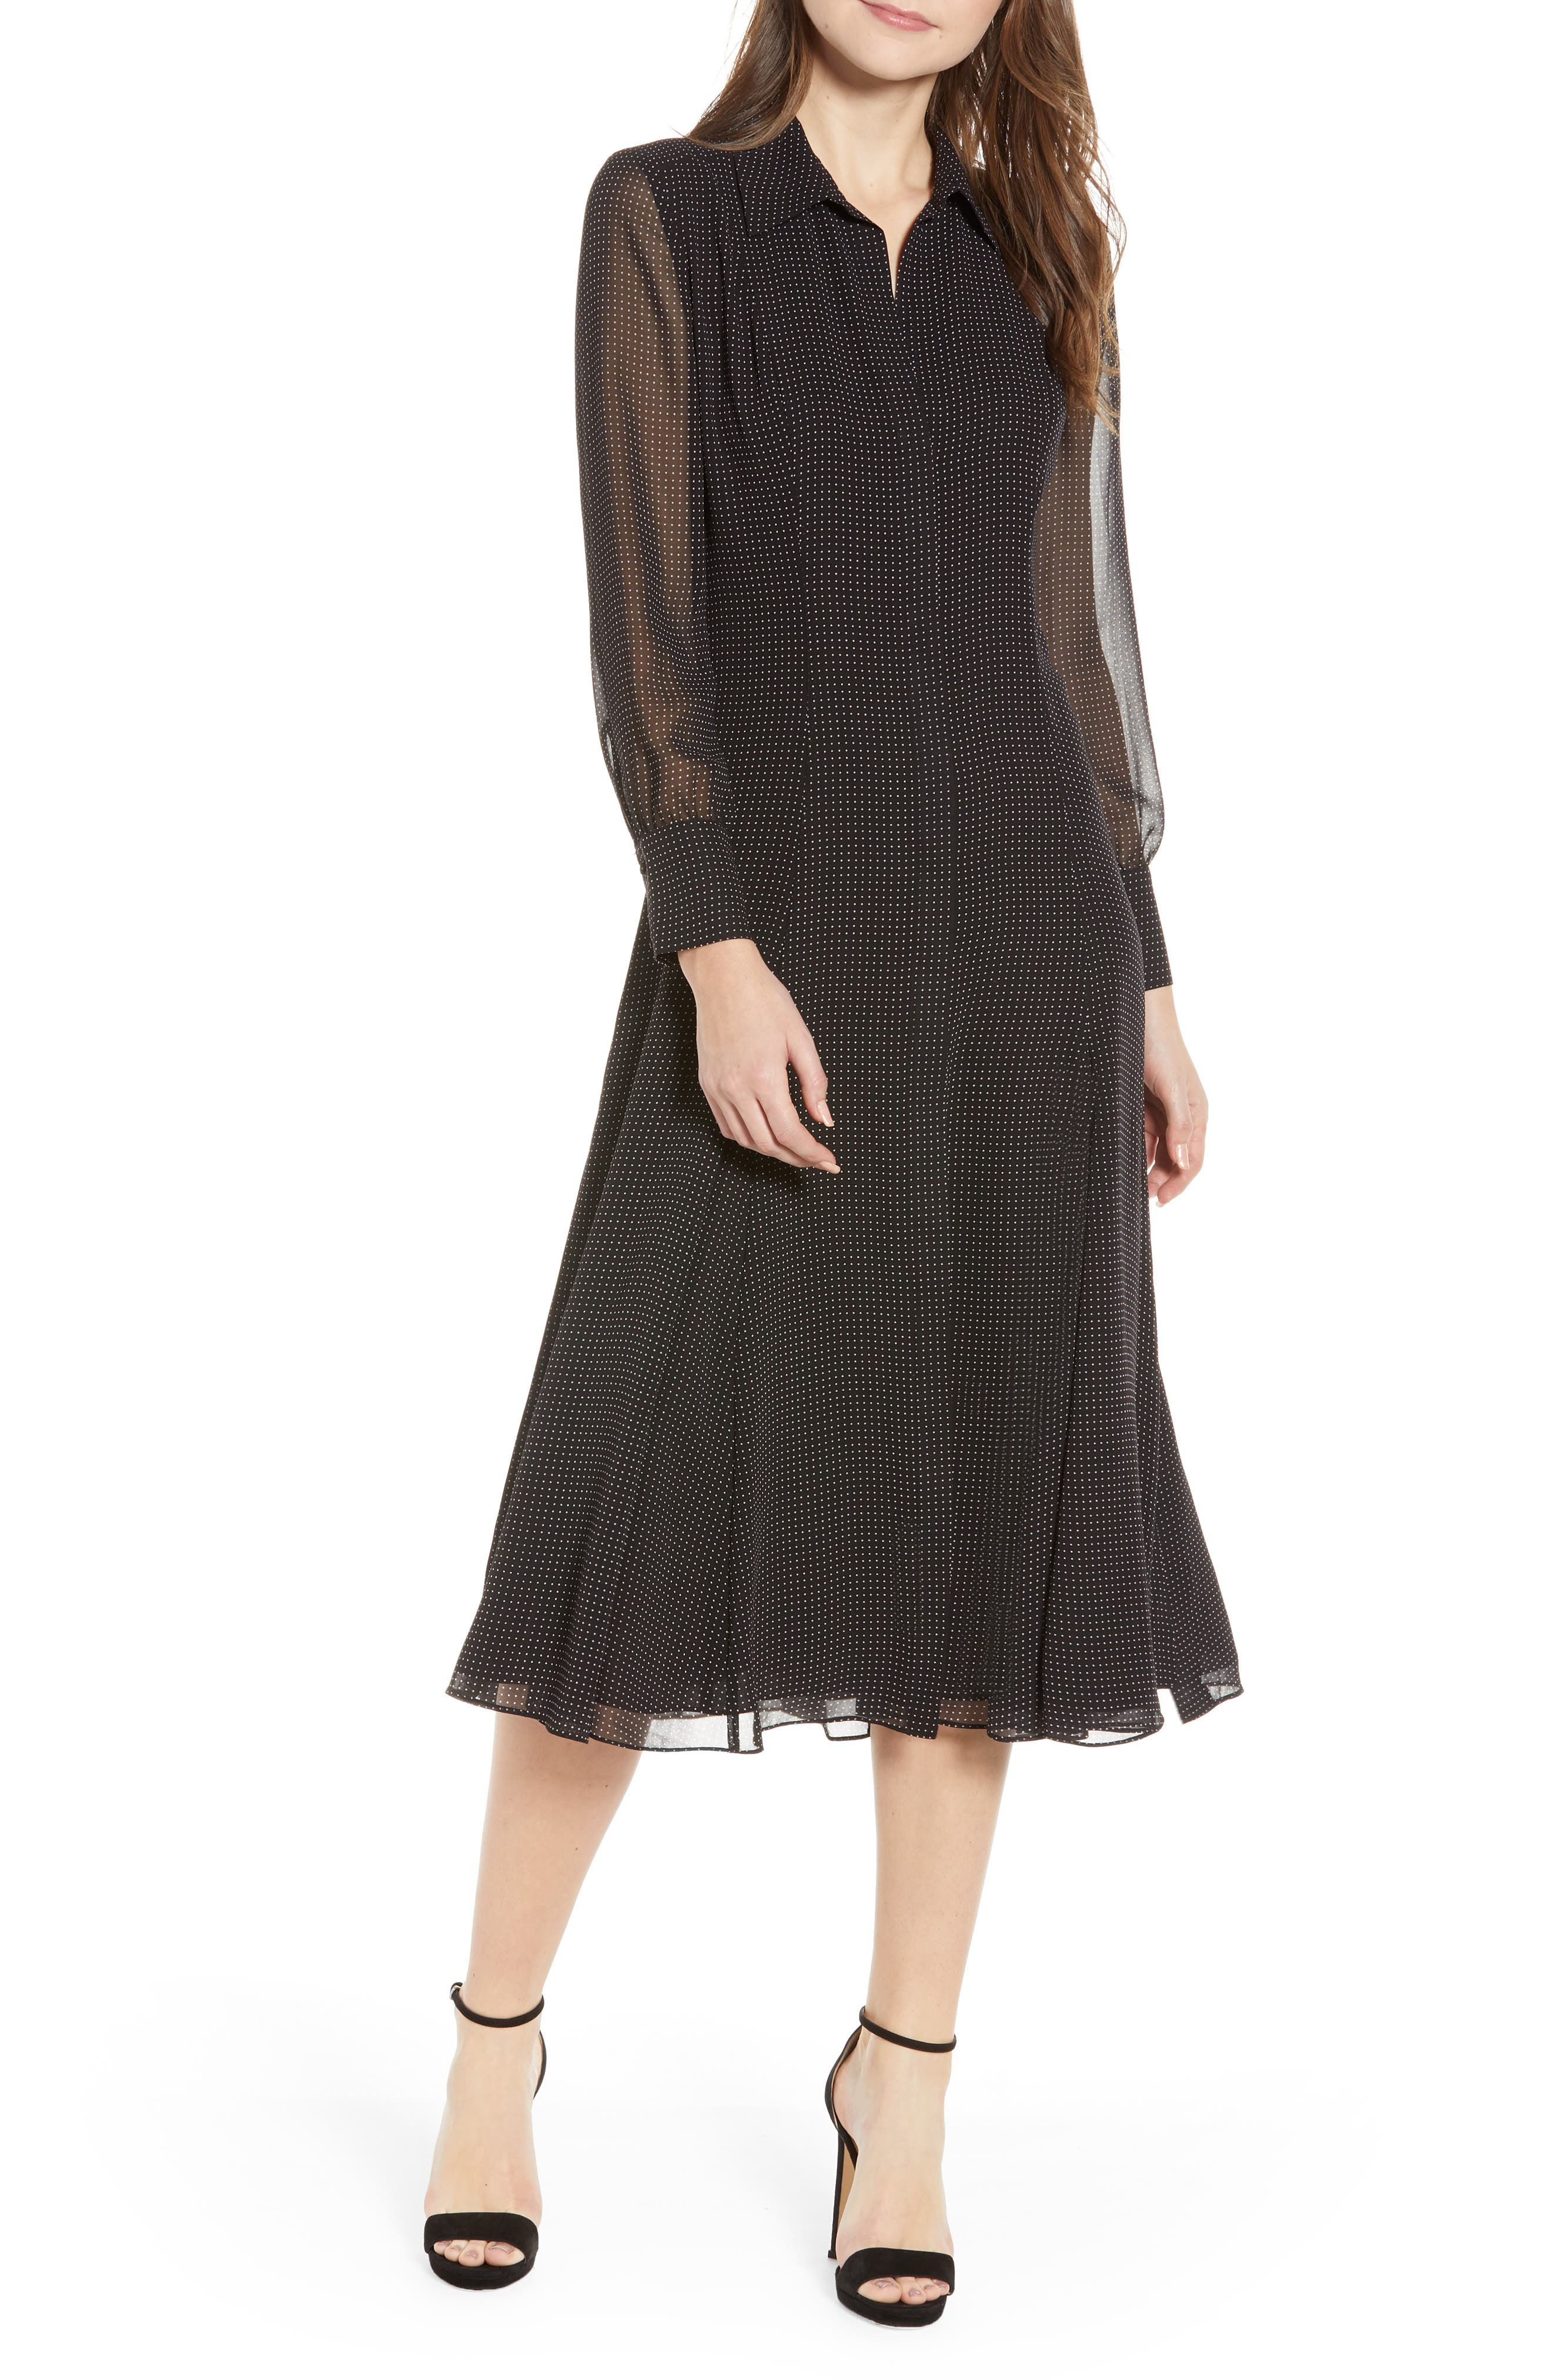 1930s Dresses | 30s Art Deco Dress Womens Rebecca Minkoff Kimberly Dot Sheer Sleeve Dress $228.00 AT vintagedancer.com